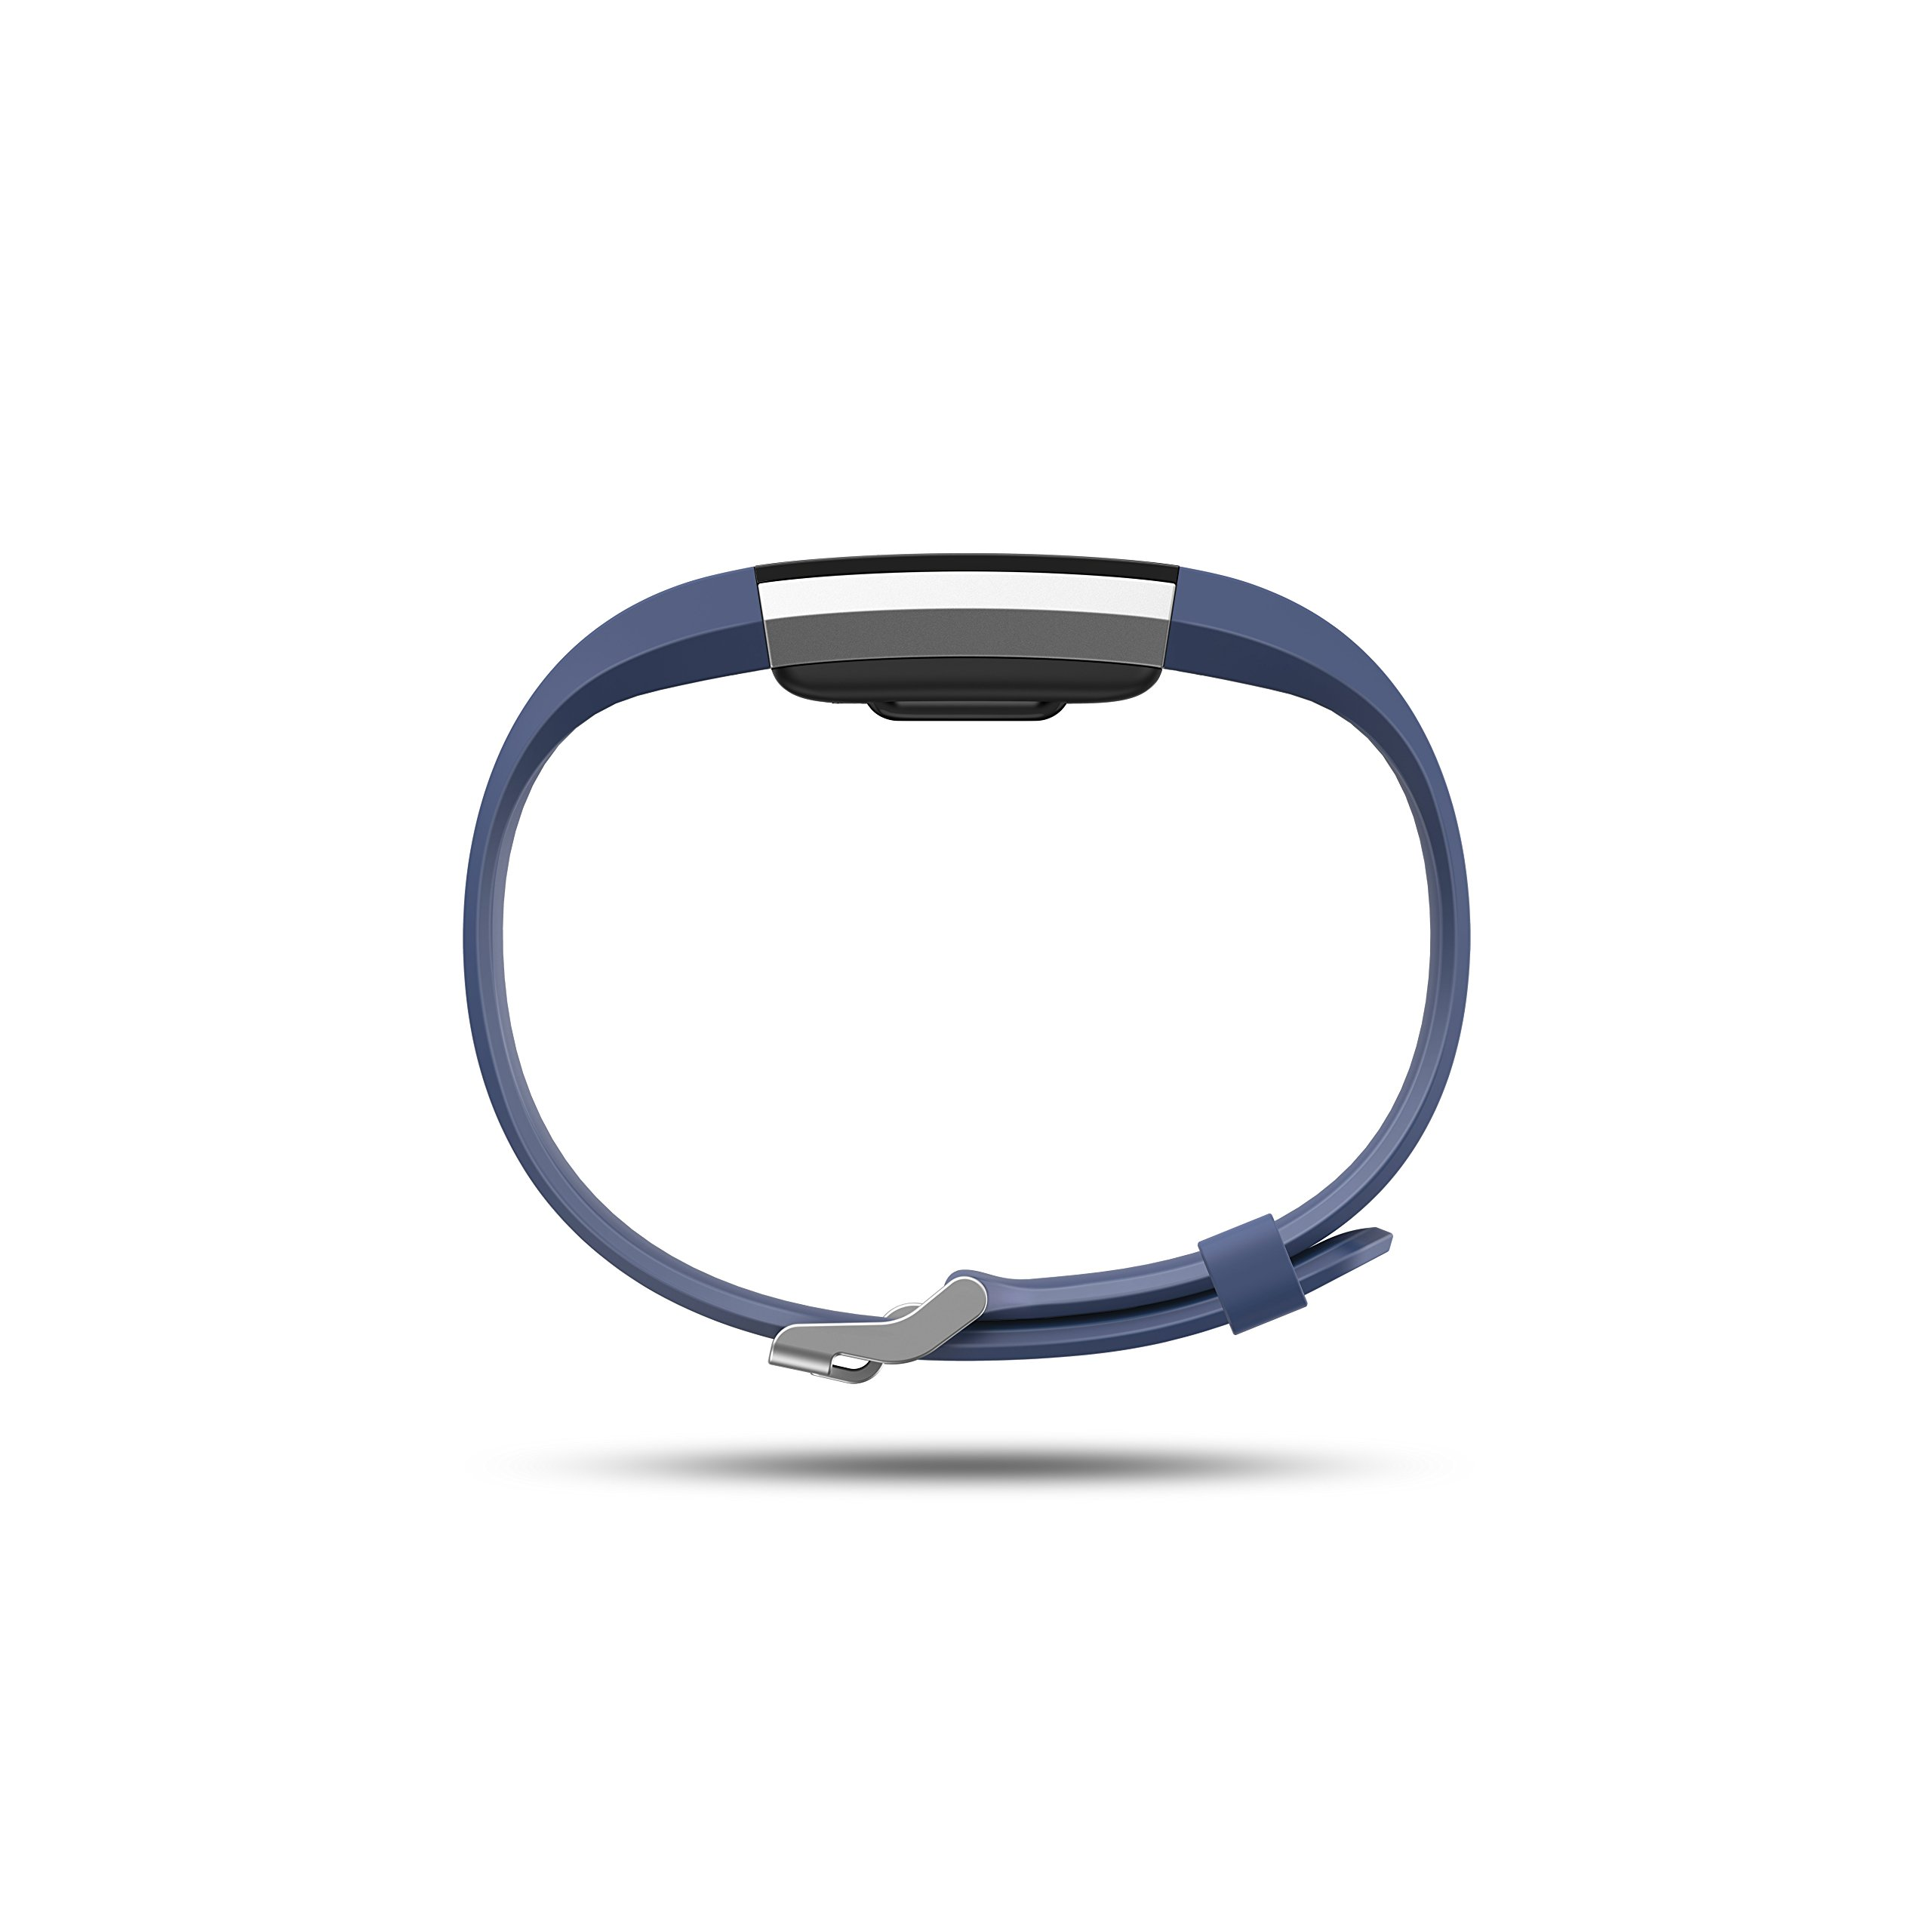 Fitbit Charge 2 Heart Rate + Fitness Wristband, Blue, Small (US Version) by Fitbit (Image #2)